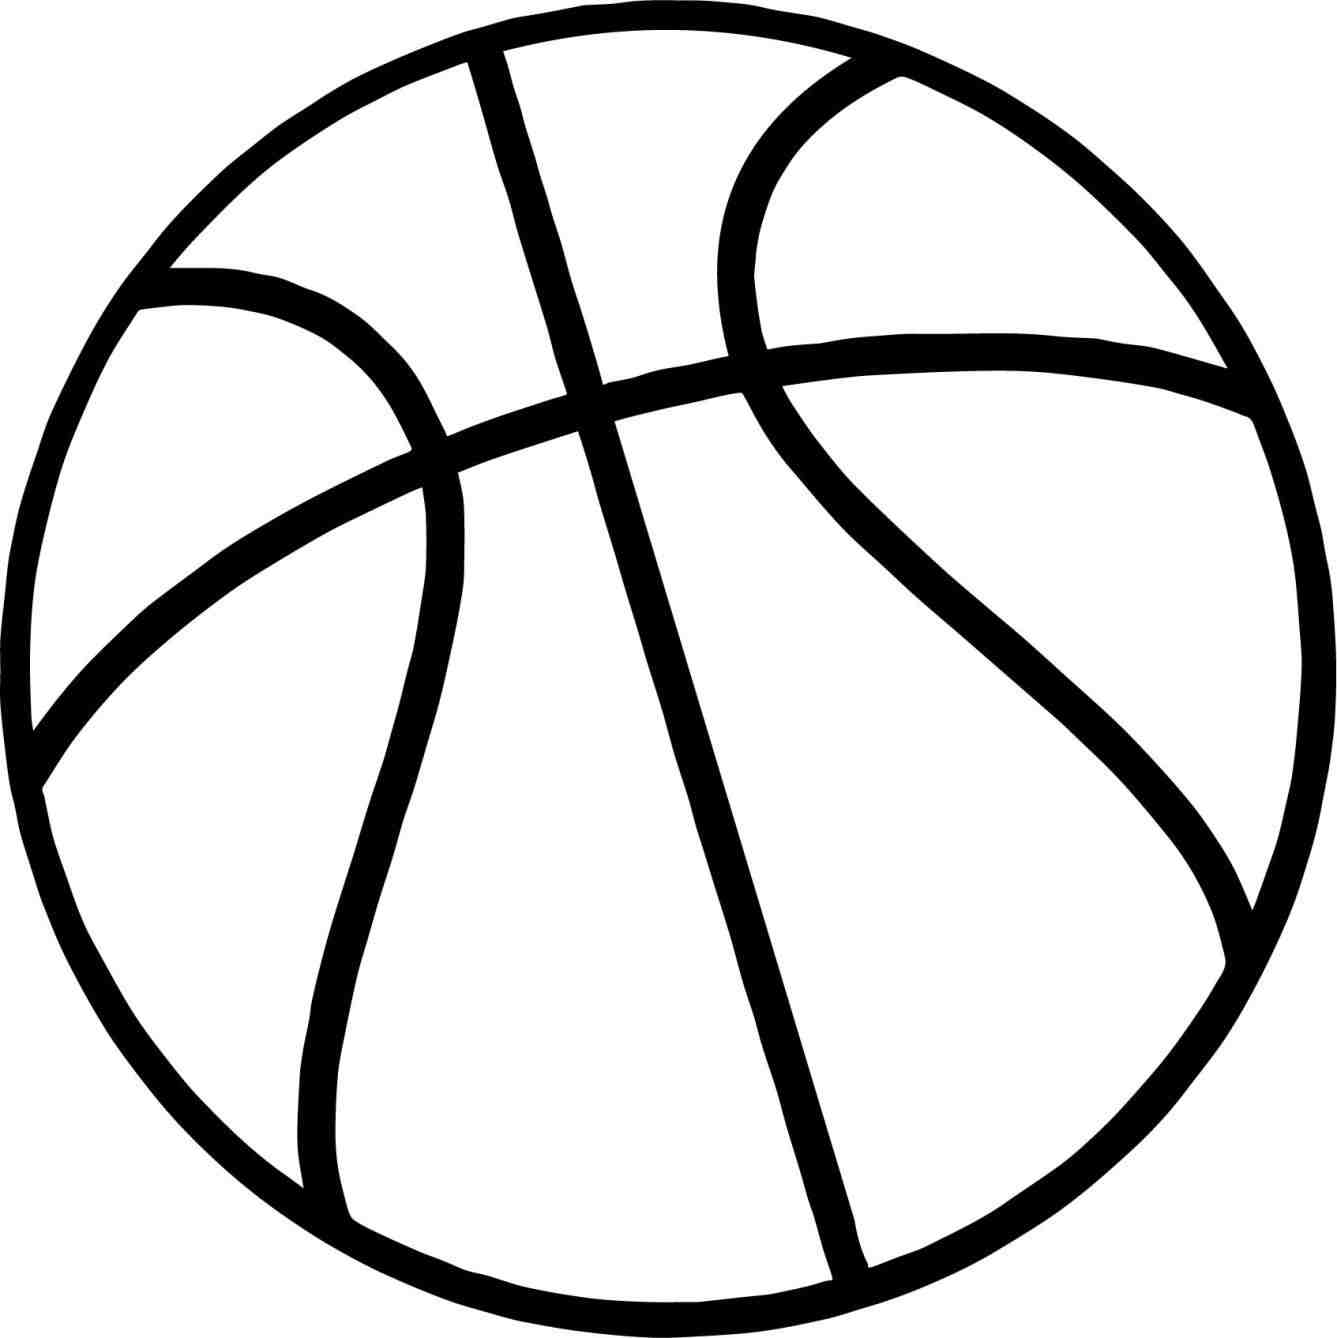 Basketball outline clipart 3 » Clipart Station.